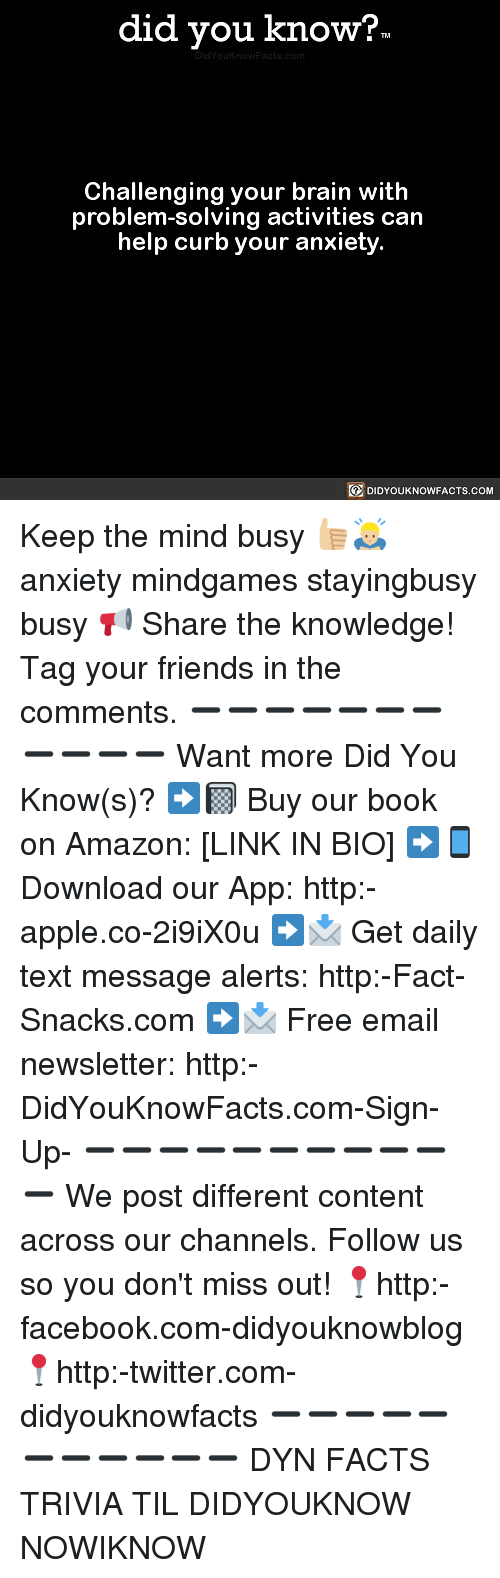 Amazon, Apple, and Facebook: did you know?  Challenging your brain with  problem-solving activities can  help curb your anxiety.  DIDYOUKNOWFACTS.COM Keep the mind busy 👍🏼🙇🏼‍♂️ anxiety mindgames stayingbusy busy 📢 Share the knowledge! Tag your friends in the comments. ➖➖➖➖➖➖➖➖➖➖➖ Want more Did You Know(s)? ➡📓 Buy our book on Amazon: [LINK IN BIO] ➡📱 Download our App: http:-apple.co-2i9iX0u ➡📩 Get daily text message alerts: http:-Fact-Snacks.com ➡📩 Free email newsletter: http:-DidYouKnowFacts.com-Sign-Up- ➖➖➖➖➖➖➖➖➖➖➖ We post different content across our channels. Follow us so you don't miss out! 📍http:-facebook.com-didyouknowblog 📍http:-twitter.com-didyouknowfacts ➖➖➖➖➖➖➖➖➖➖➖ DYN FACTS TRIVIA TIL DIDYOUKNOW NOWIKNOW